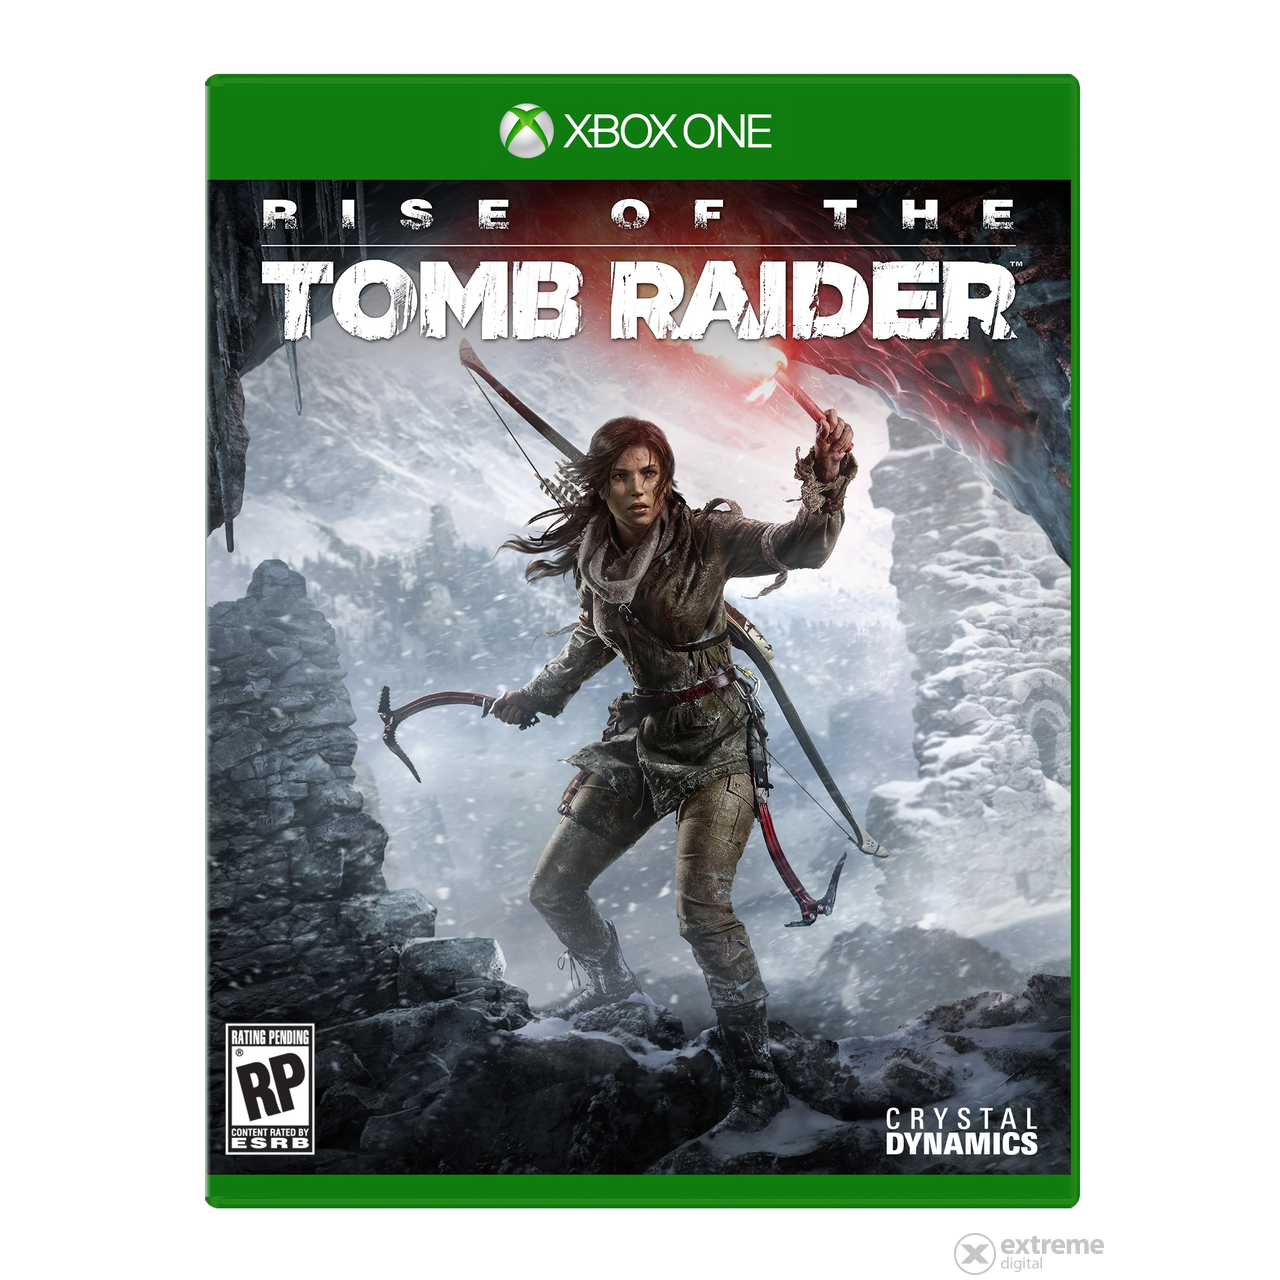 rise-of-the-tomb-raider-xbox-one-jatekszoftver_5663eb39.jpg